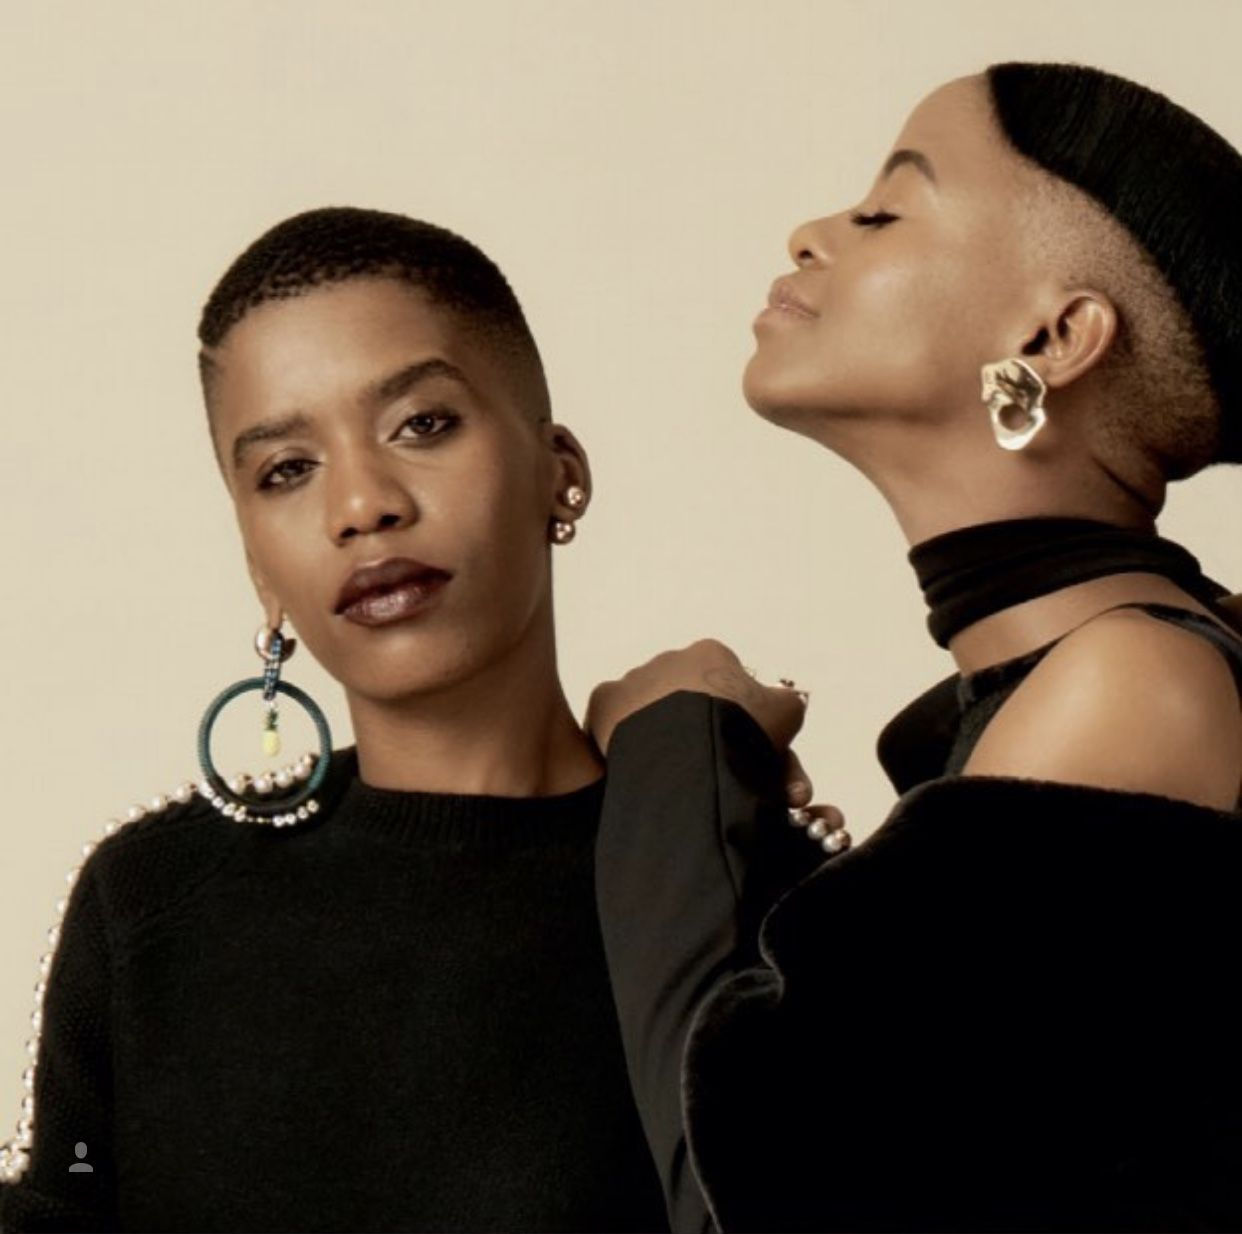 Model on the right wearing pichulik abalone earrings with